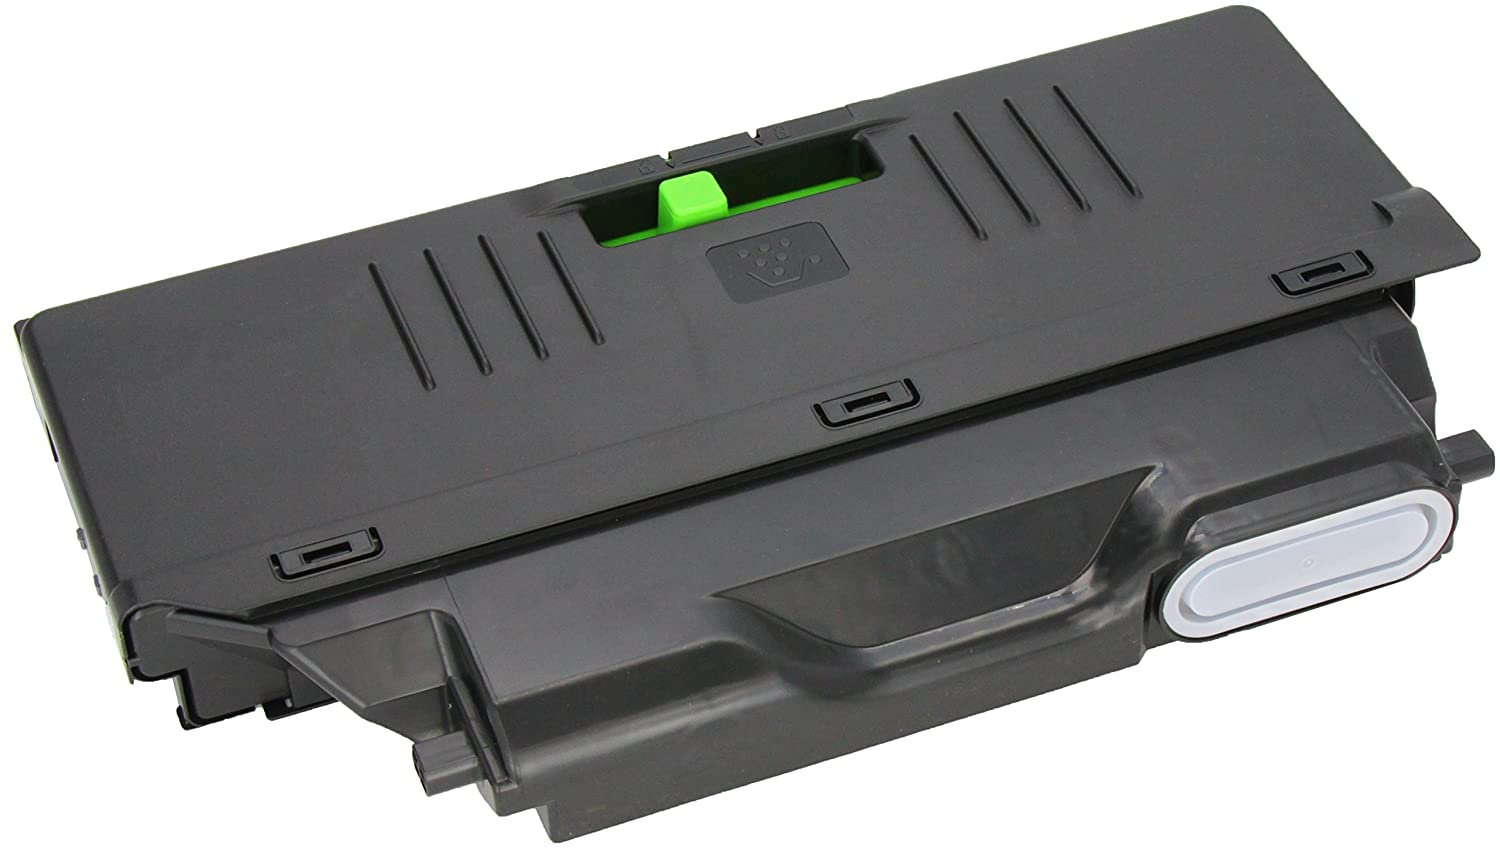 Sharp Waste Toner Box, 37SHAMX230HB 2330452